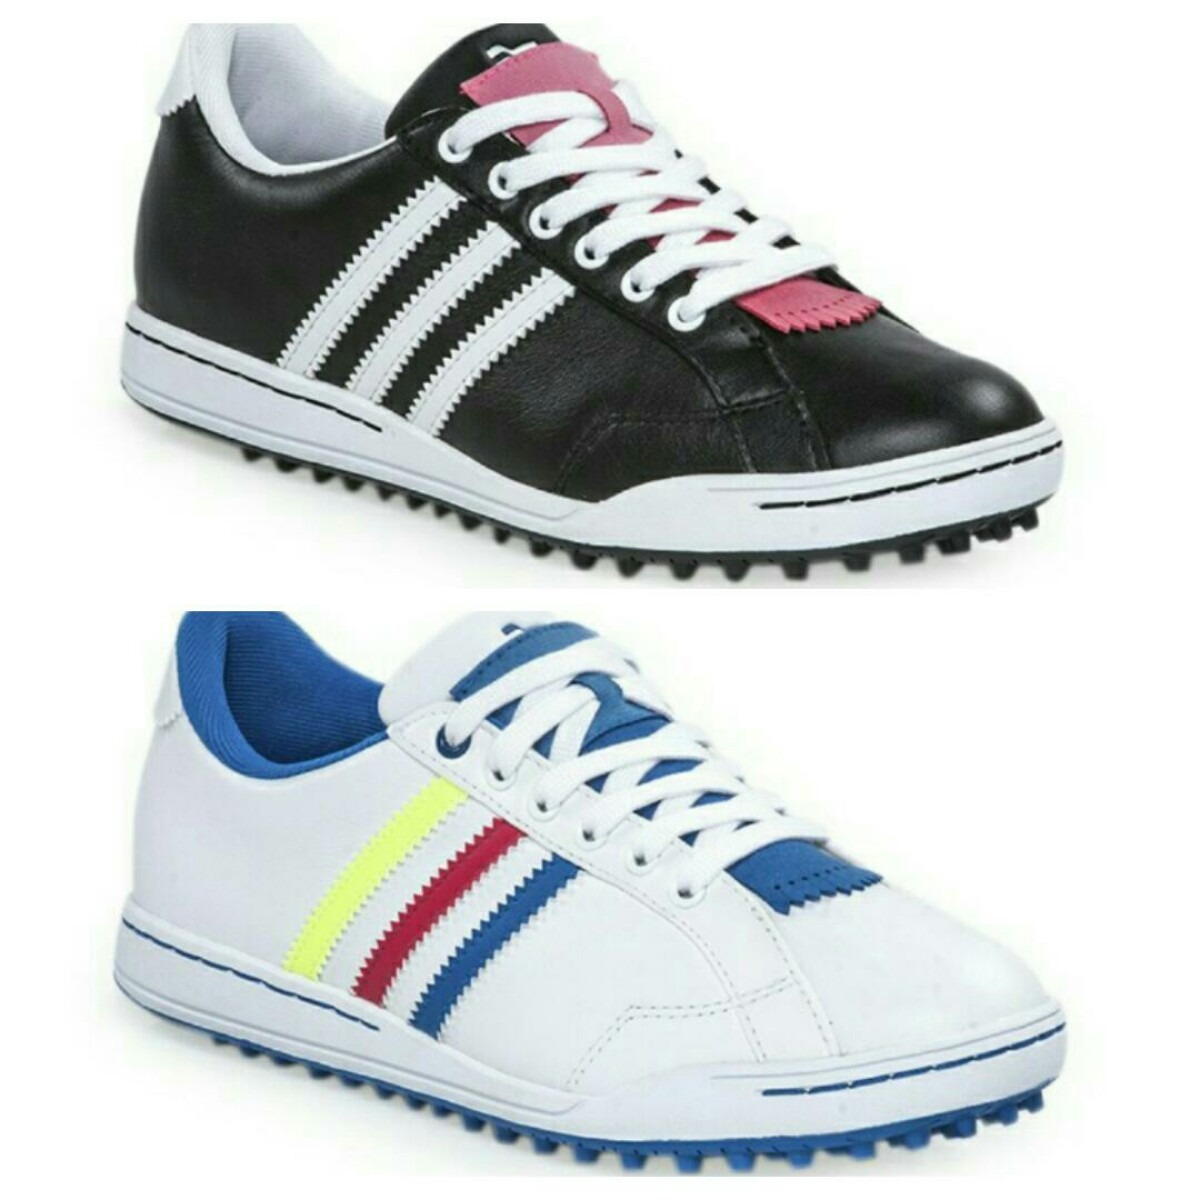 designer fashion 1d0cd 2422c zapatillas adidas adicross ii golf w. consultar stock. Cargando zoom.